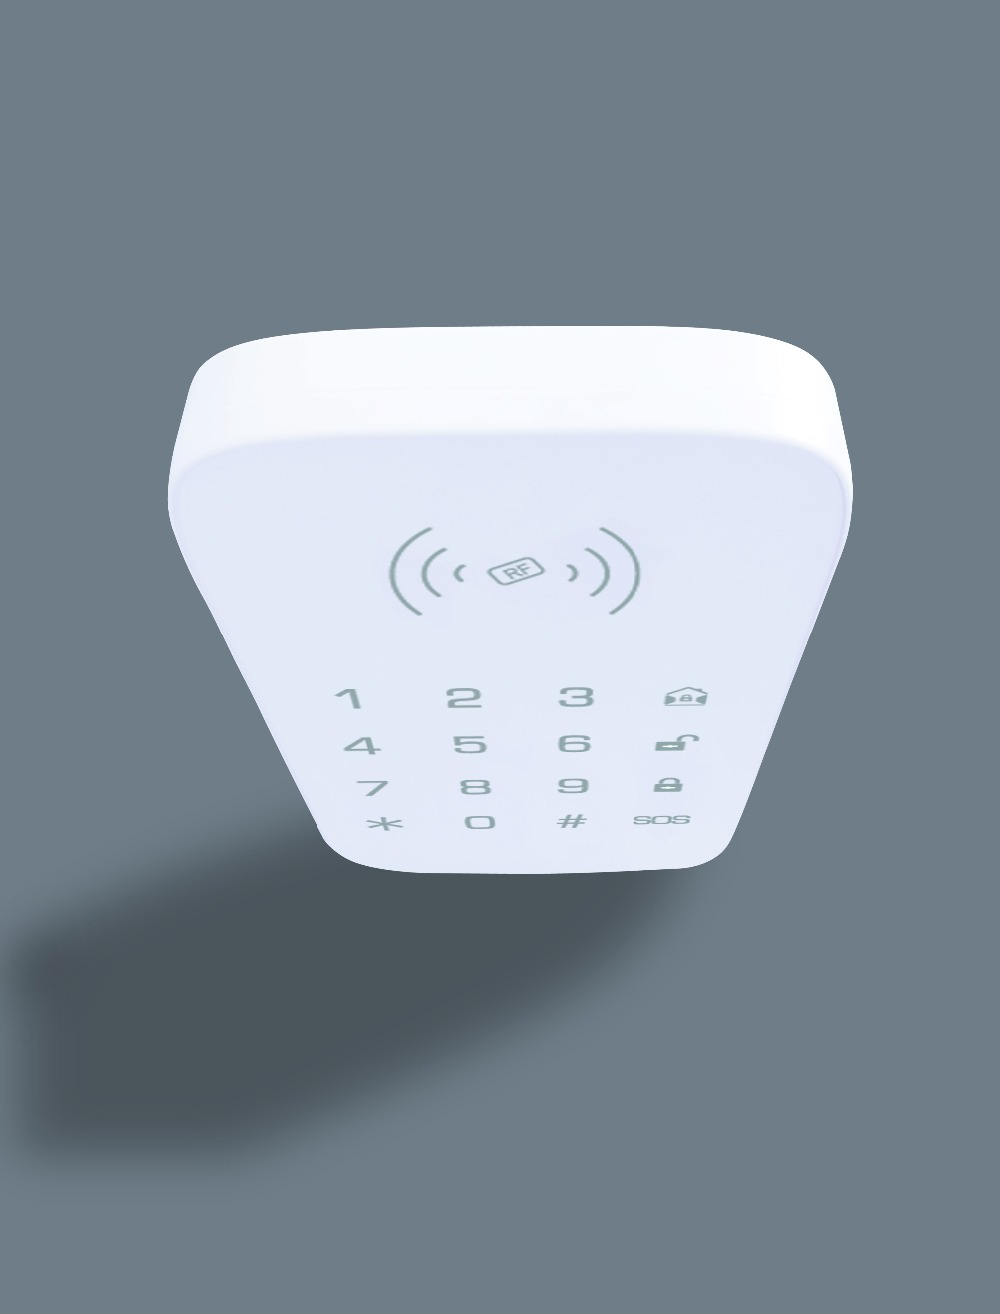 keypad wireless